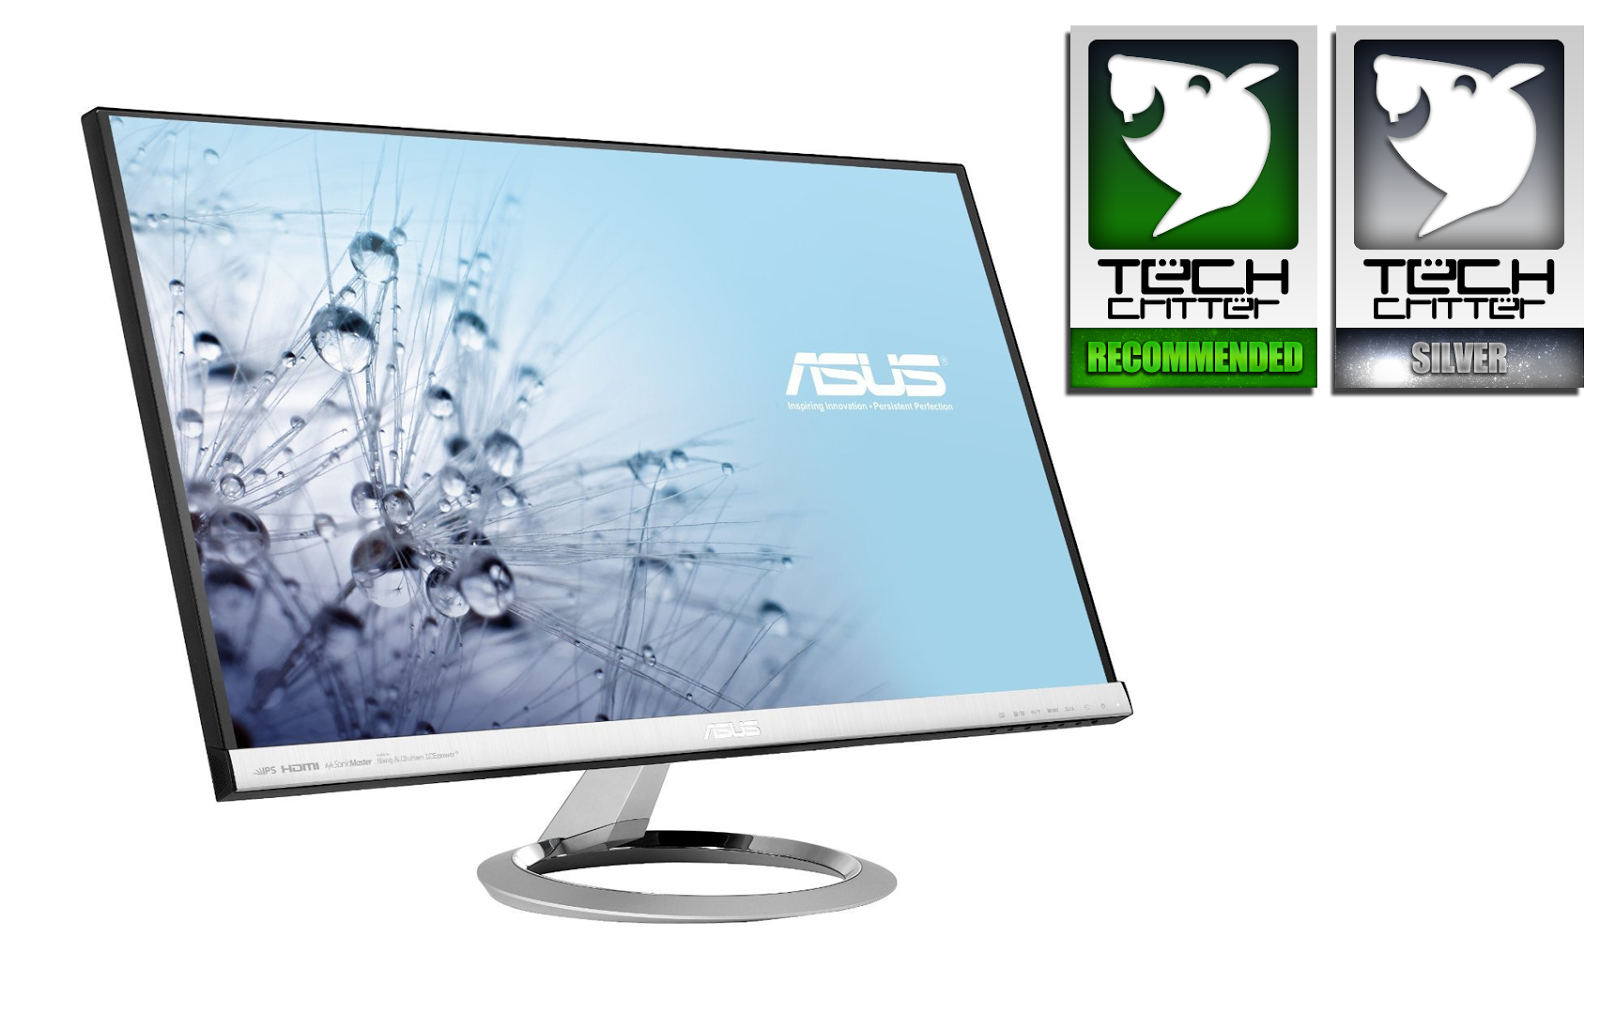 Unboxing & Review: ASUS MX279H Designo Series LCD Monitor 21